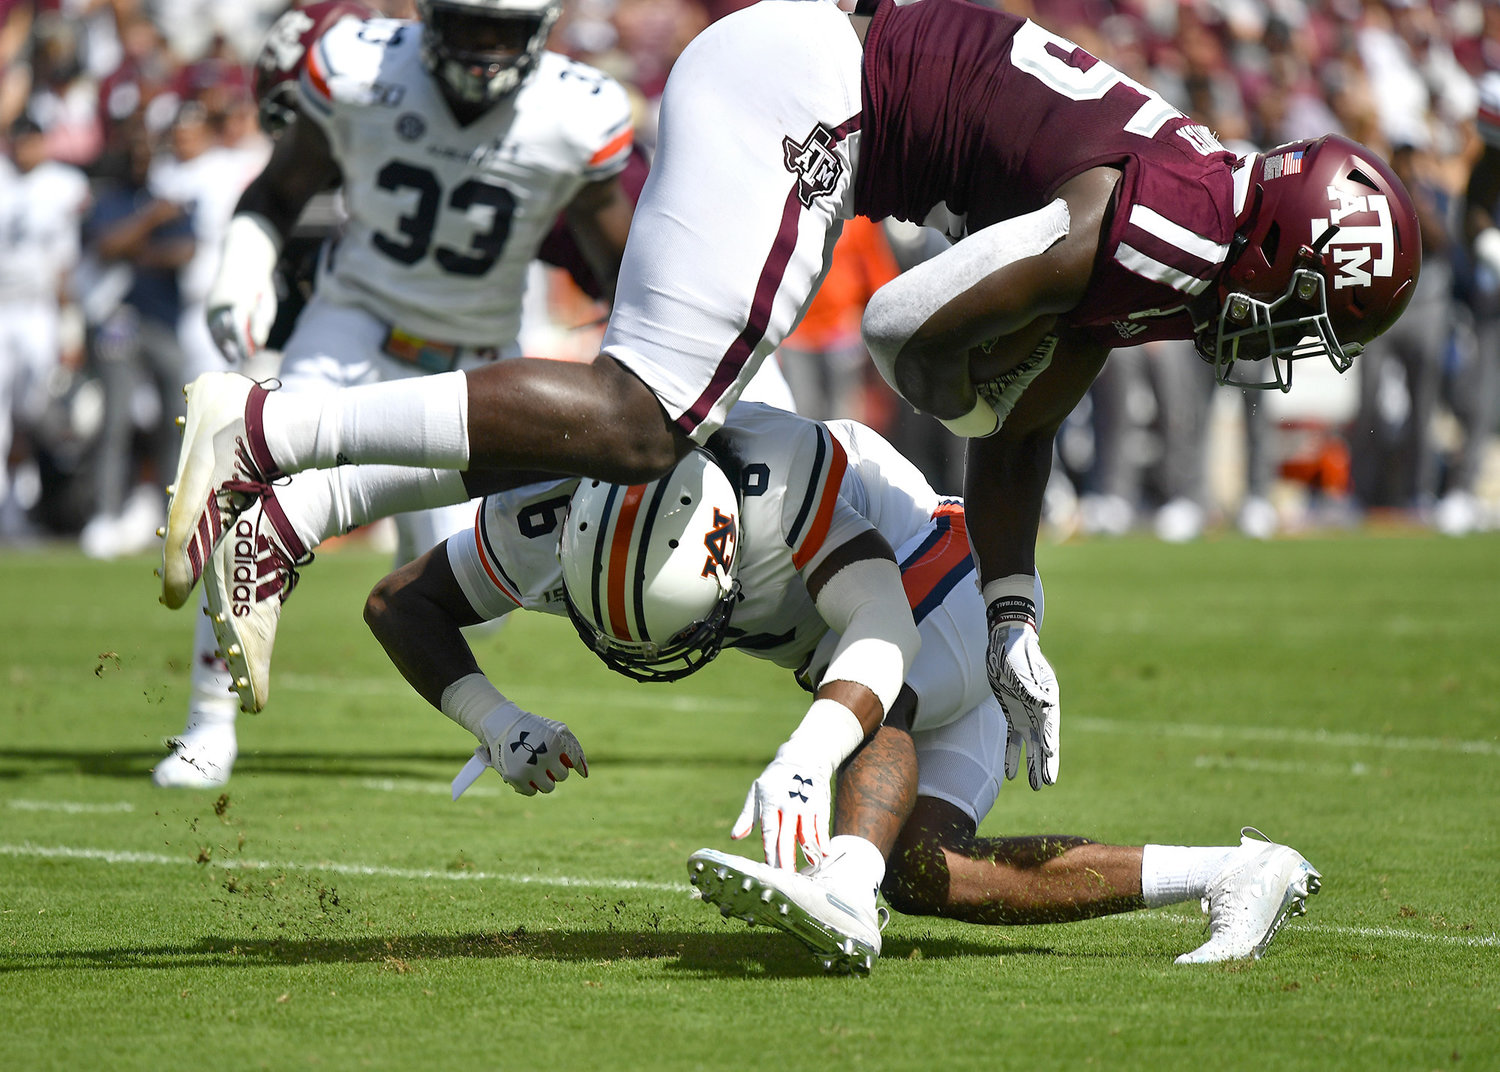 Auburn Tigers defensive back Christian Tutt (6) tackles a Texas A&M Aggies player during the first quarter of an NCAA football game Saturday, Sept. 21, 2019, at Kyle Field in College Station Texas. Auburn wins 28-20.